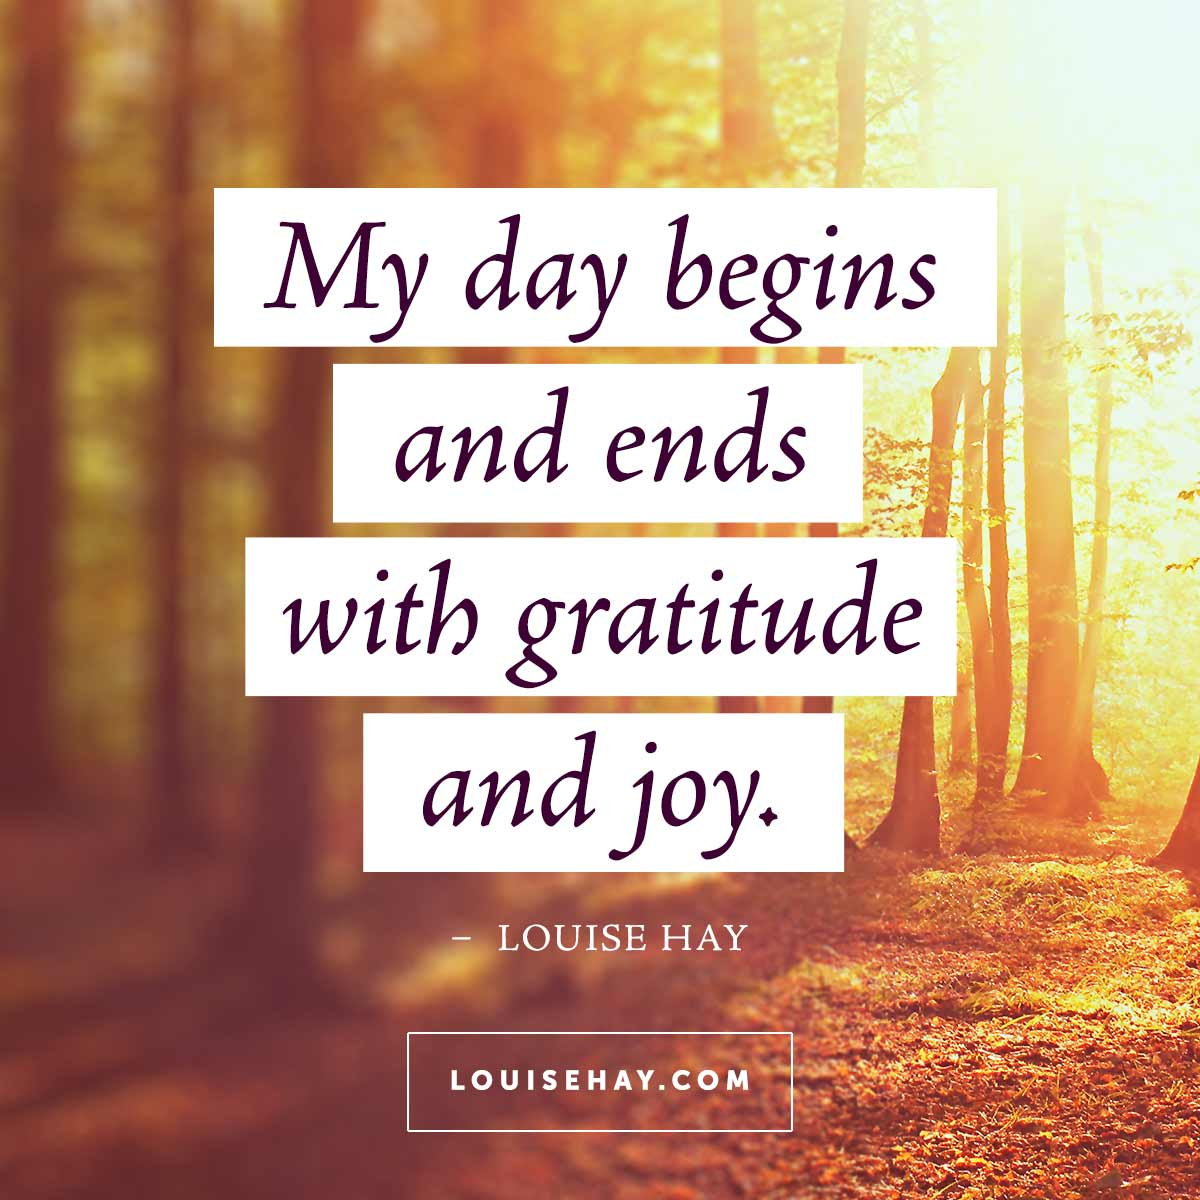 Inspirational Quotes About Happiness: Daily Affirmations & Beautiful Quotes From Louise Hay